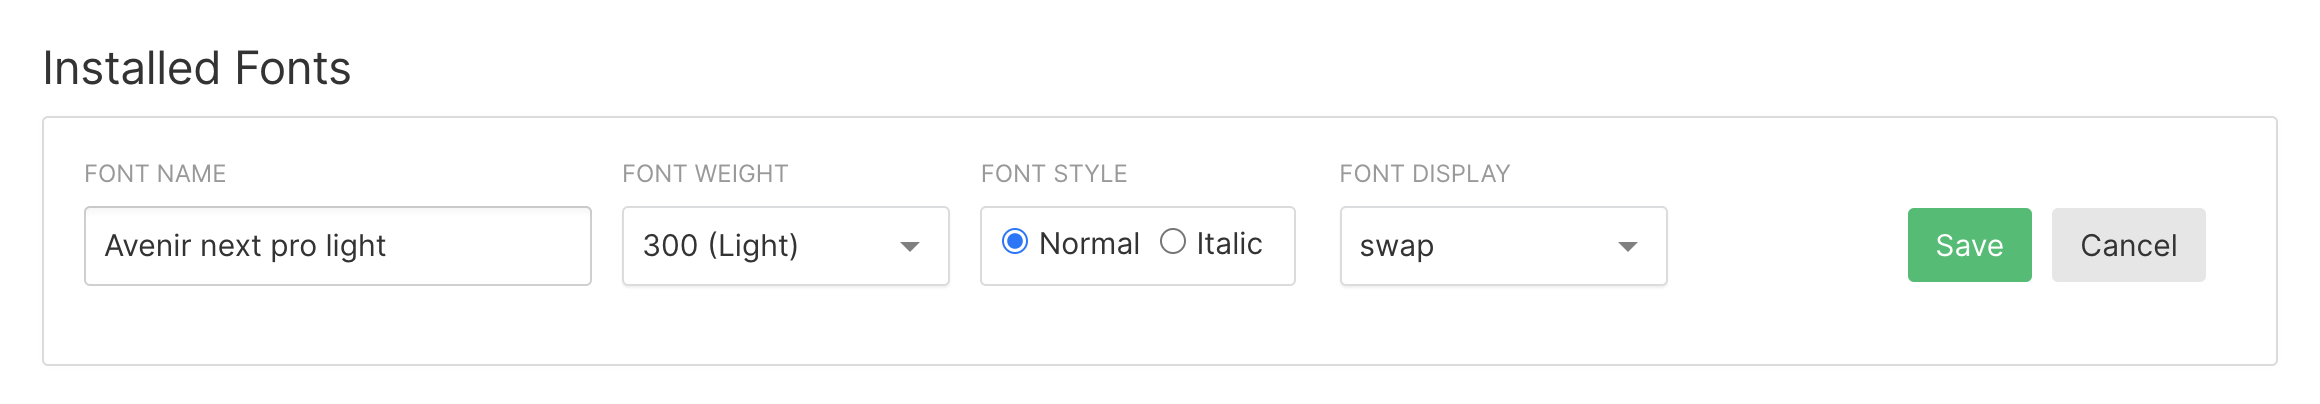 Edit font display settings.